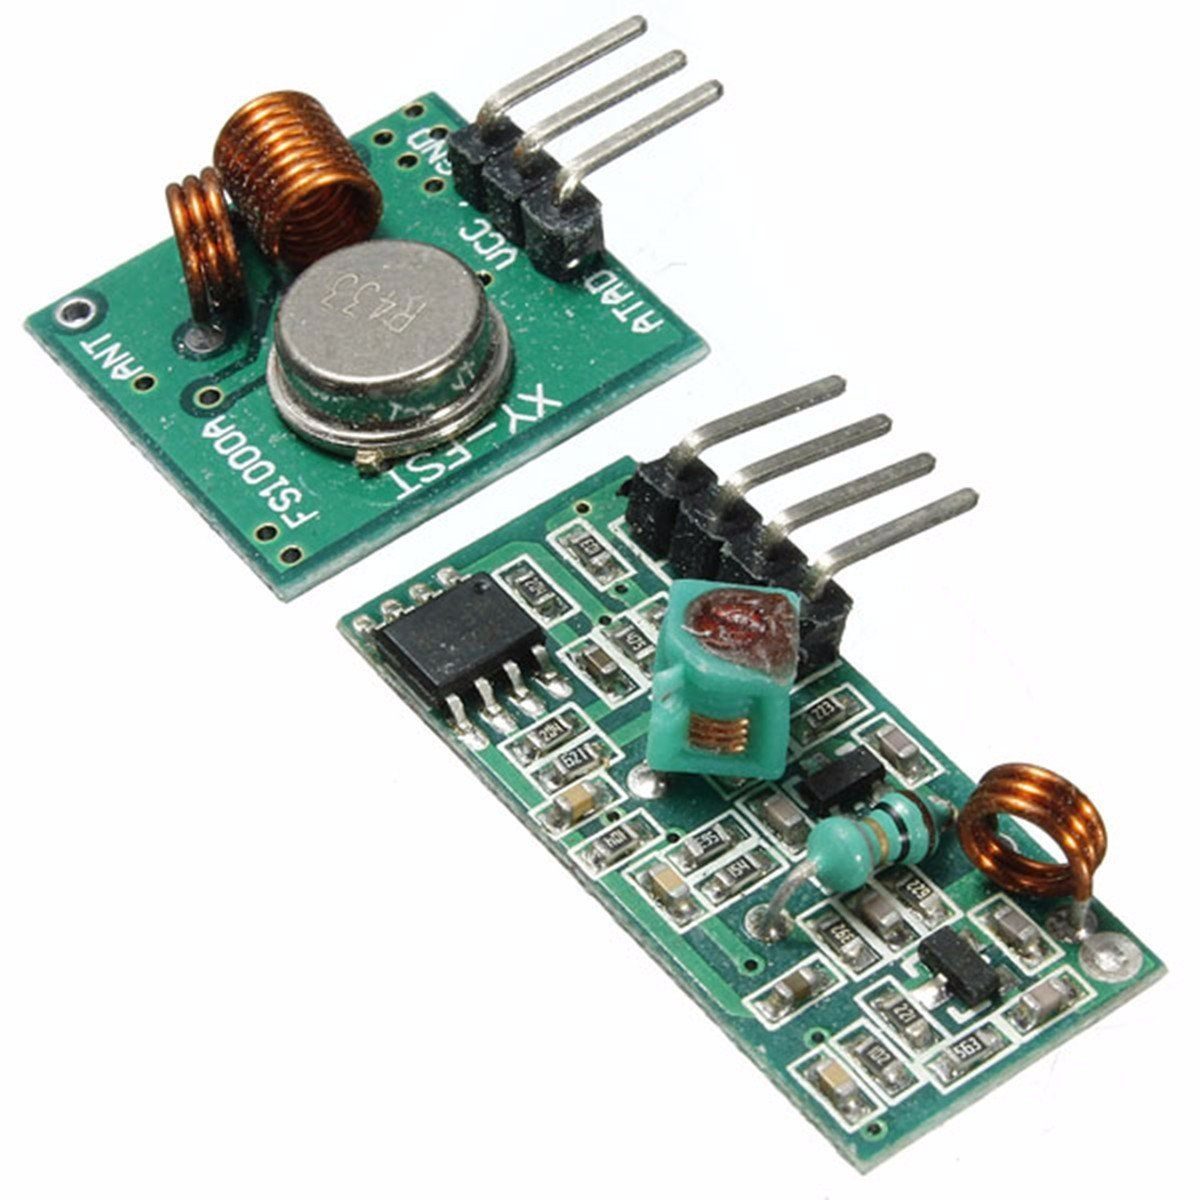 433Mhz RF Decoder Transmitter With Receiver Module Kit For